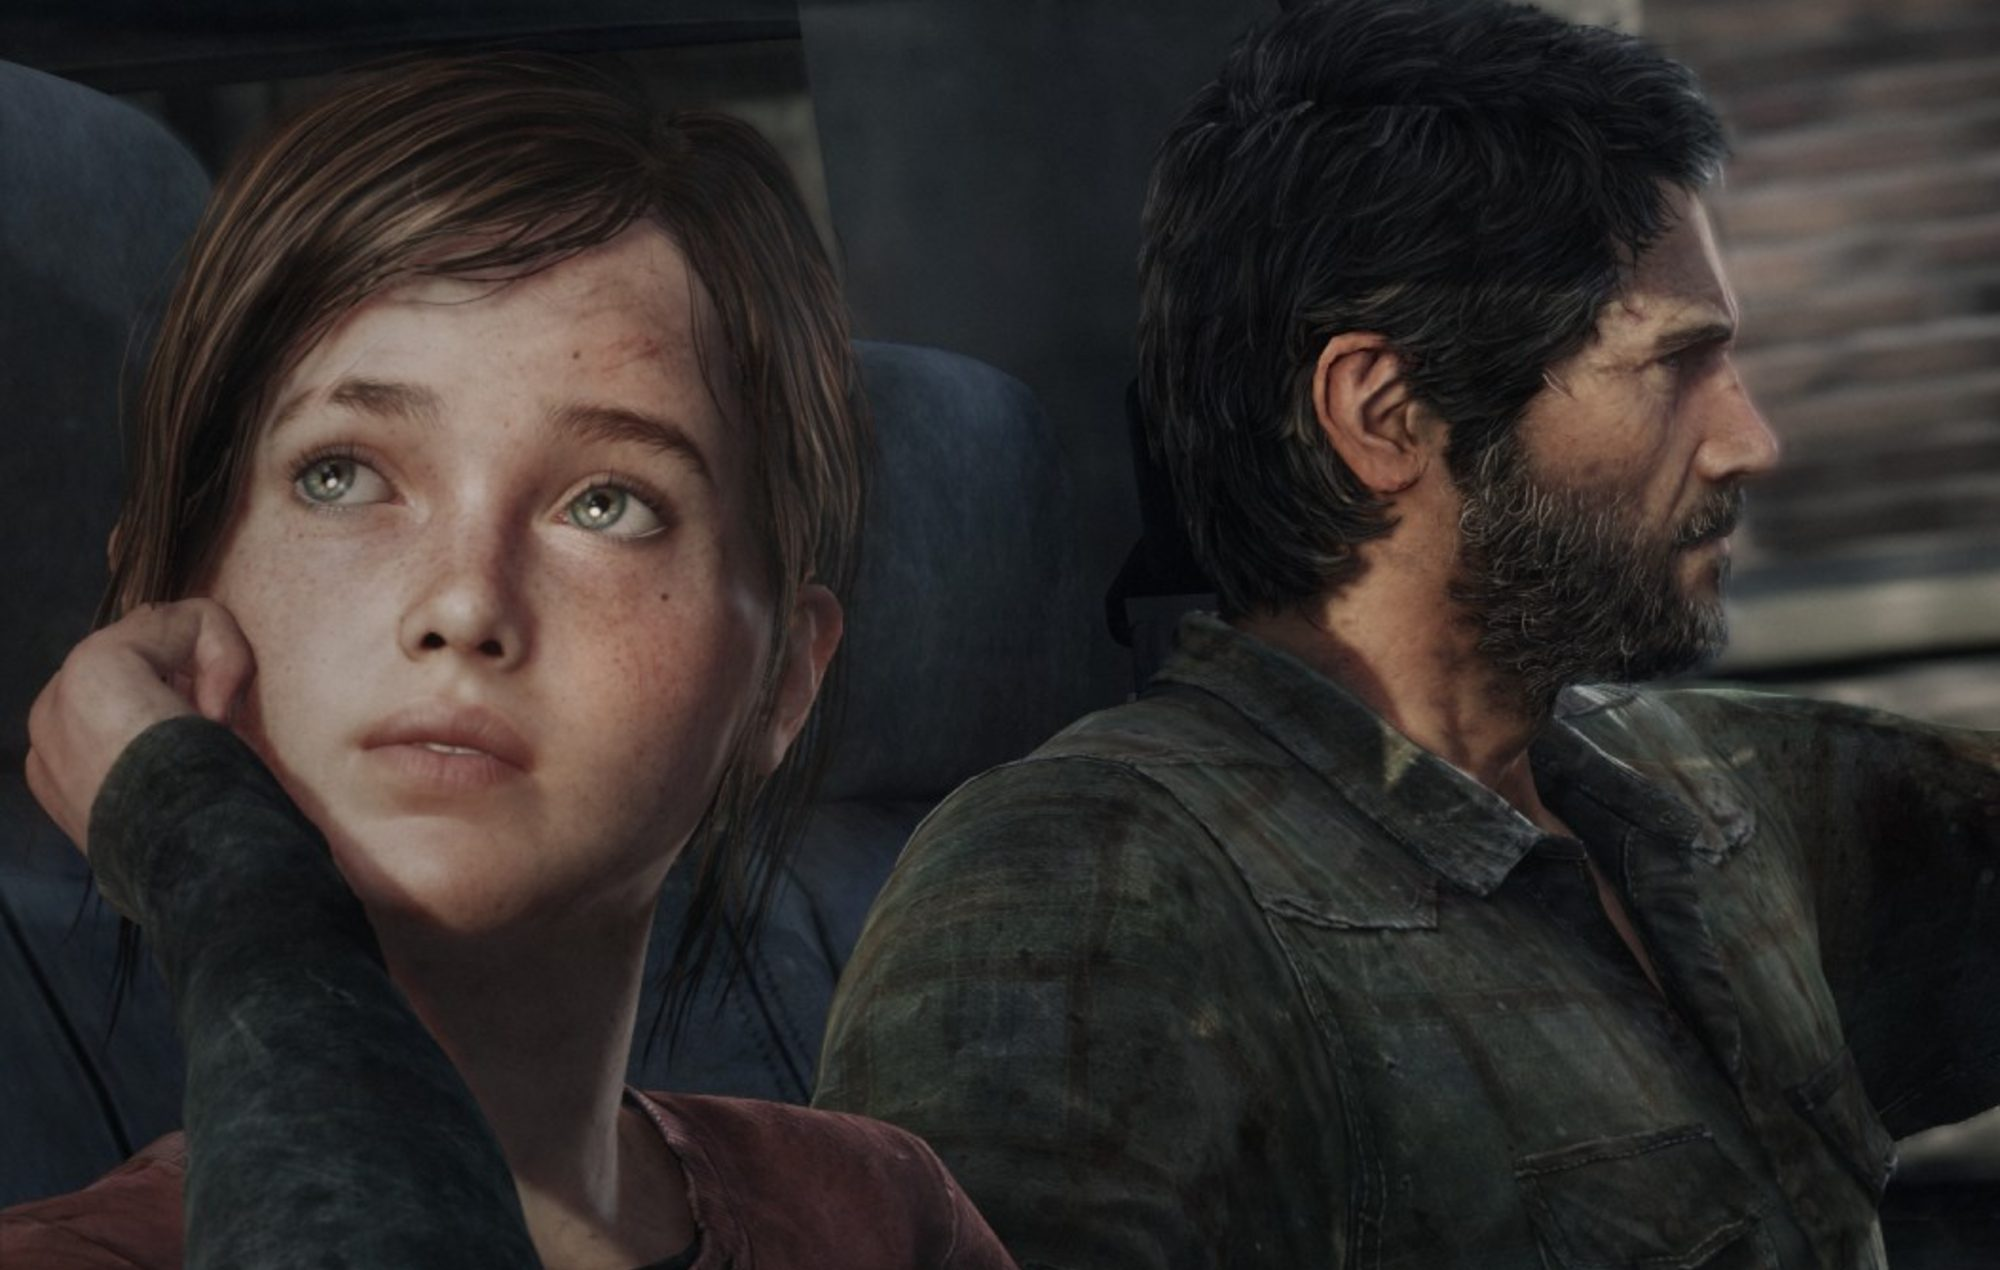 The Last of Us Reportedly Being Remade for PS5